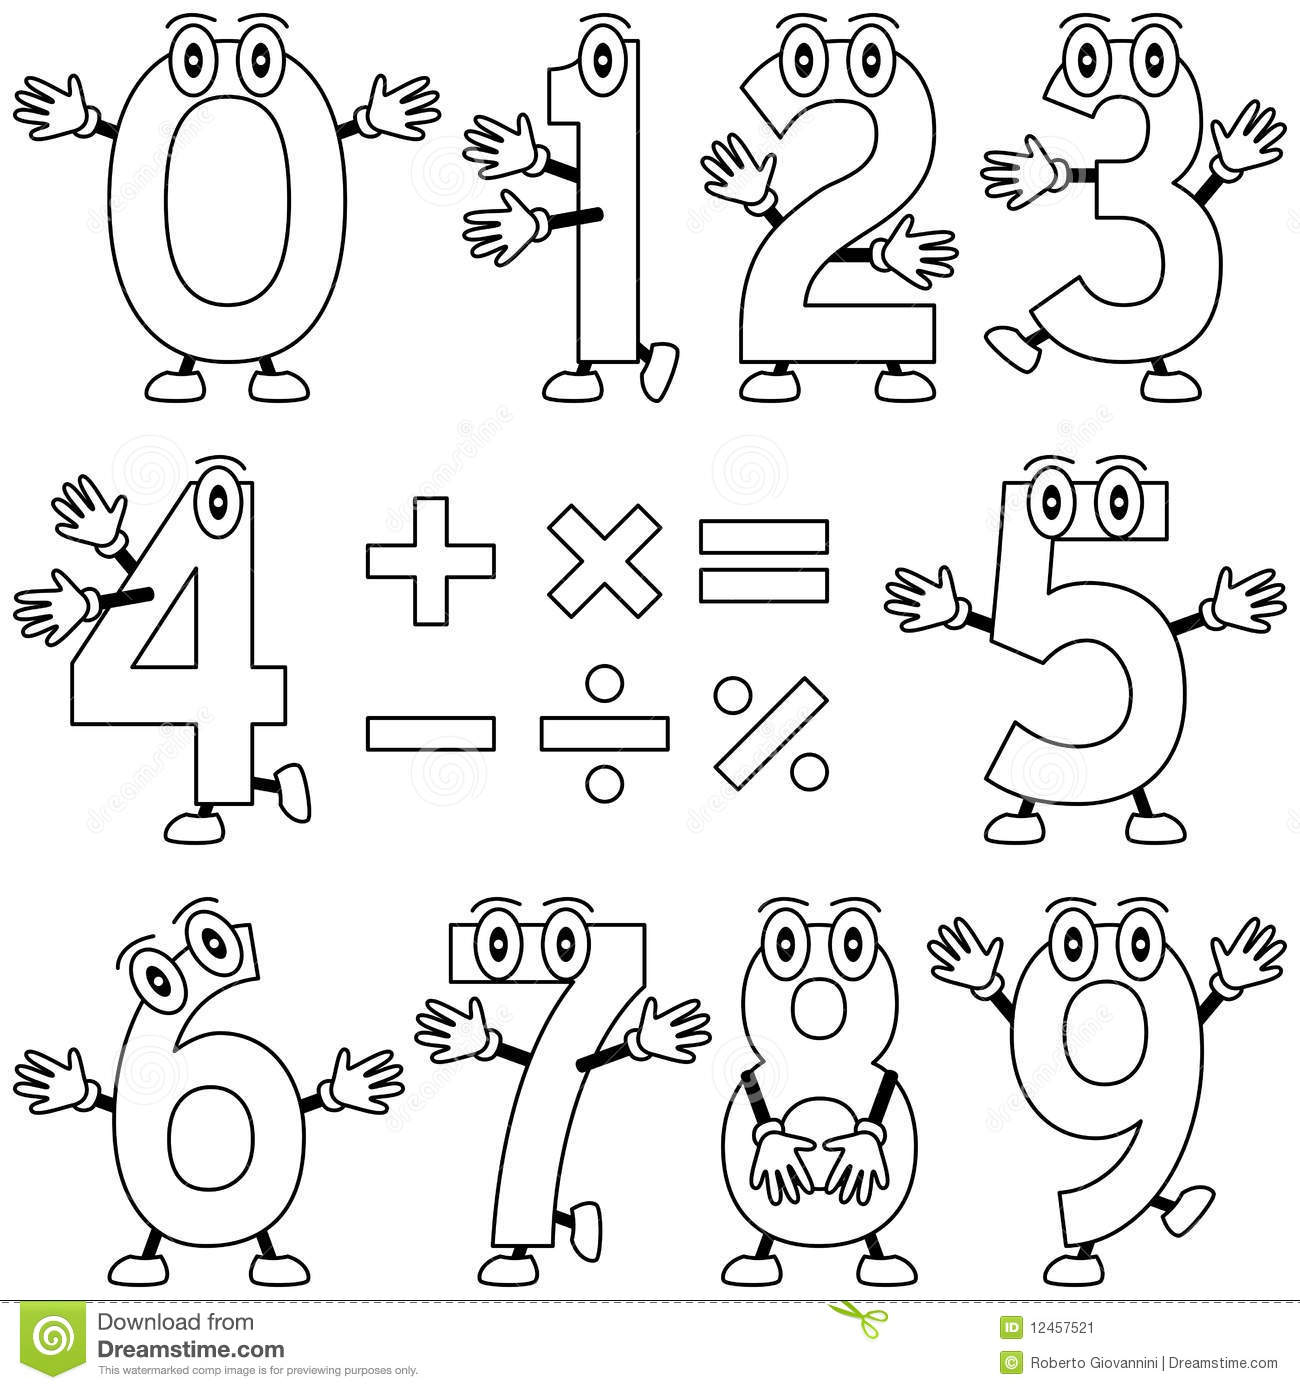 Spanish Bubble Letters Coloring Page